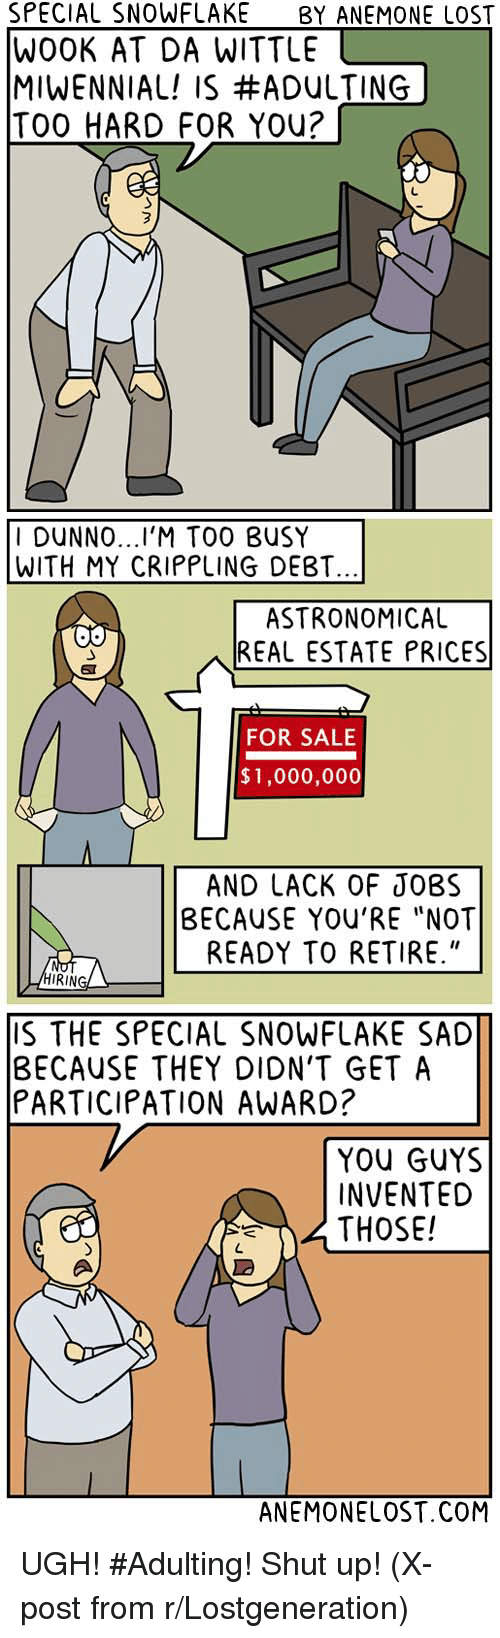 "Shut Up, Ups, and Lost: SPECIAL SNOWFLAKE  BY ANEMONE LOST  WOOK AT DA WITTLE  MIWENNIAL! IS #ADULTING  TOO HARD FOR You?  I DUNNO  TOO BUSY  WITH MY CRIPPLING DEBT.  ASTRONOMICAL  REAL ESTATE PRICES  FOR SALE  $1,000,000  AND LACK OF JOBS  BECAUSE YOU'RE ""NOT  READY TO RETIRE.""  RING  S THE SPECIAL SNOWFLAKE SAD  BECAUSE THEY DION'T GET A  PARTICIPATION AWARD?  YOU GUYS  INVENTED  THOSE!  ANEMONELOST.COM UGH! #Adulting! Shut up! (X-post from r/Lostgeneration)"